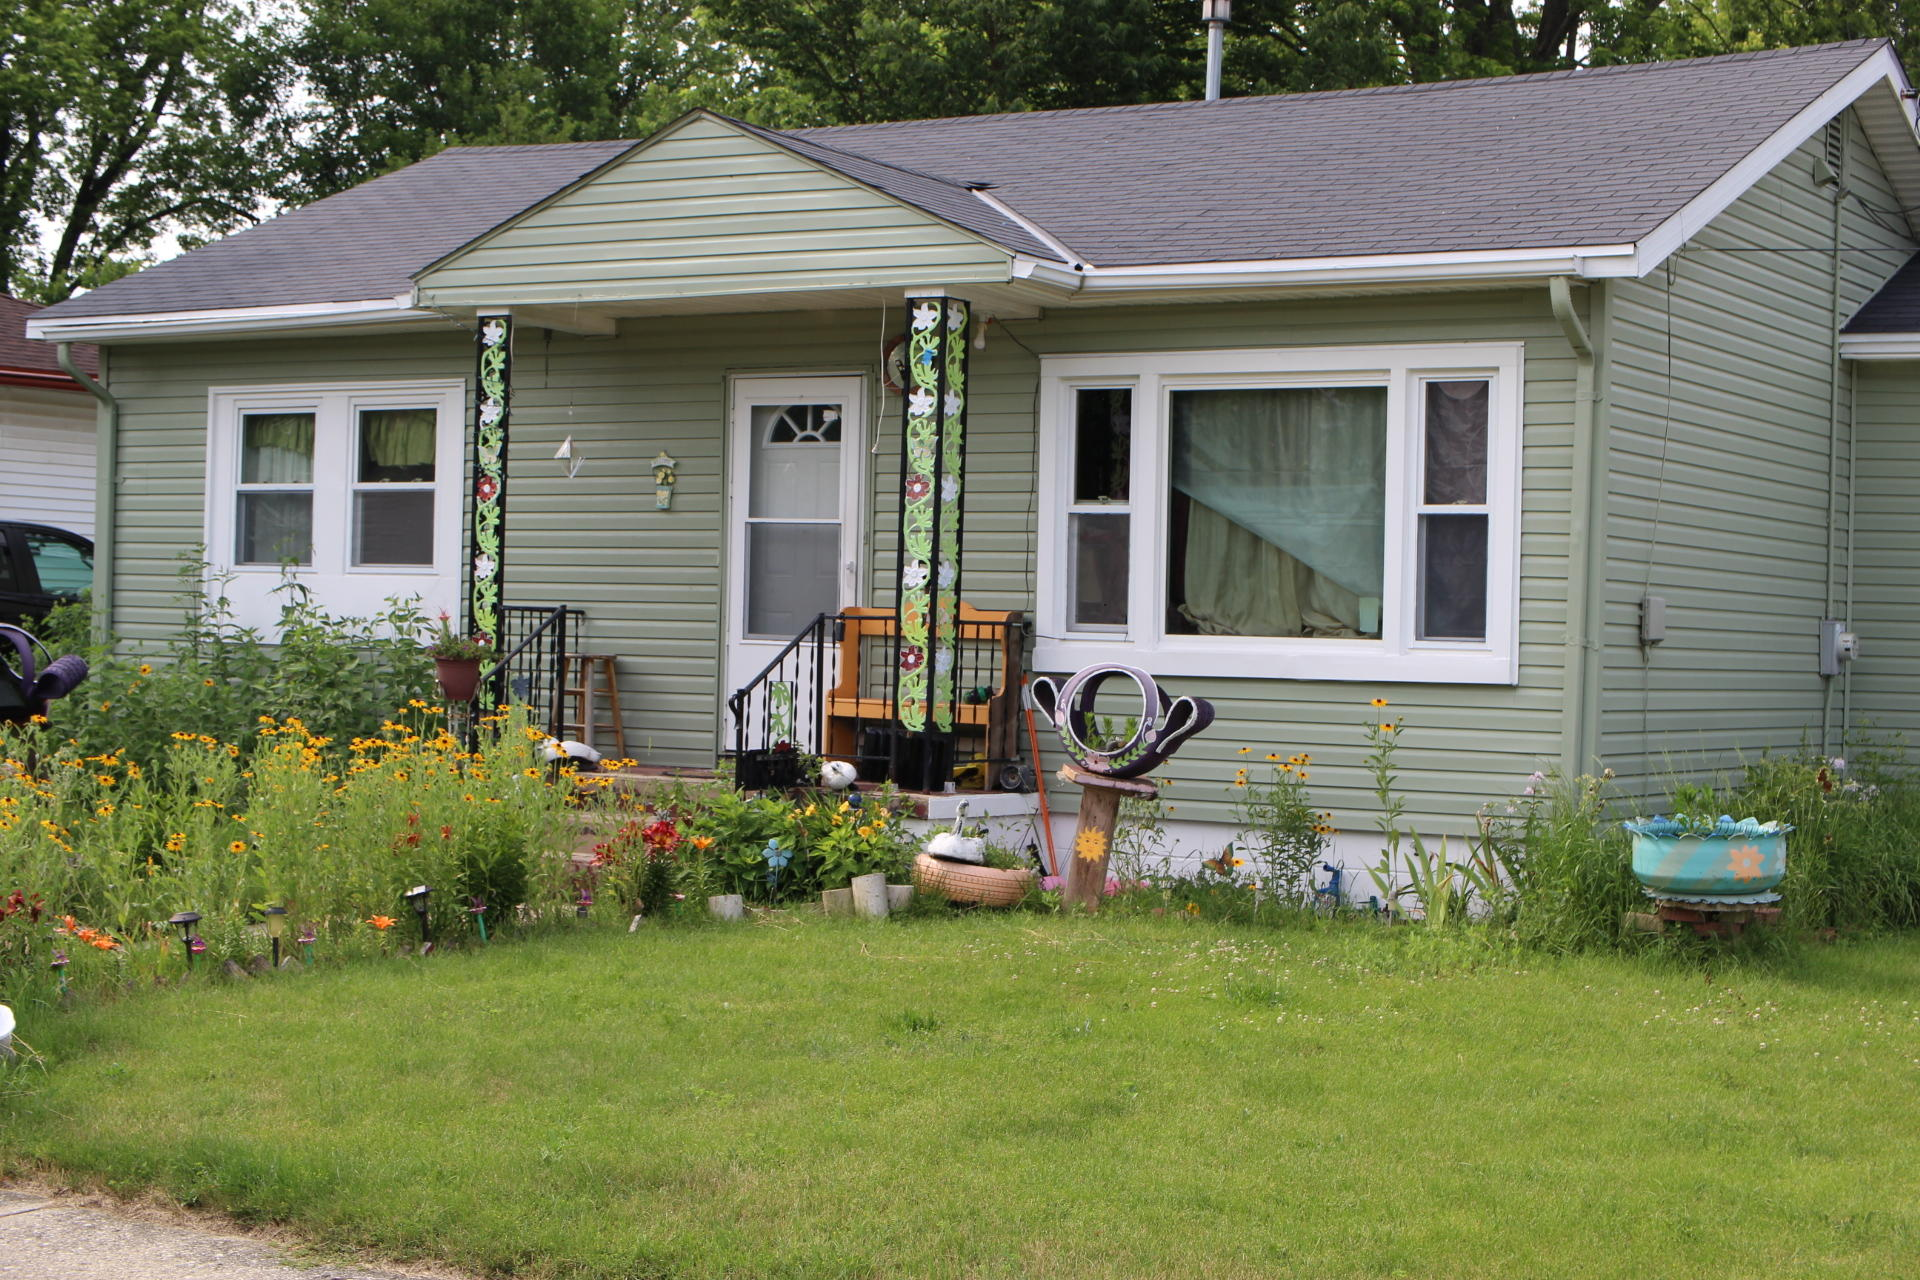 414 Frame Ave, Waukesha, Wisconsin 53186, 3 Bedrooms Bedrooms, 6 Rooms Rooms,2 BathroomsBathrooms,Single-Family,For Sale,Frame Ave,1702065